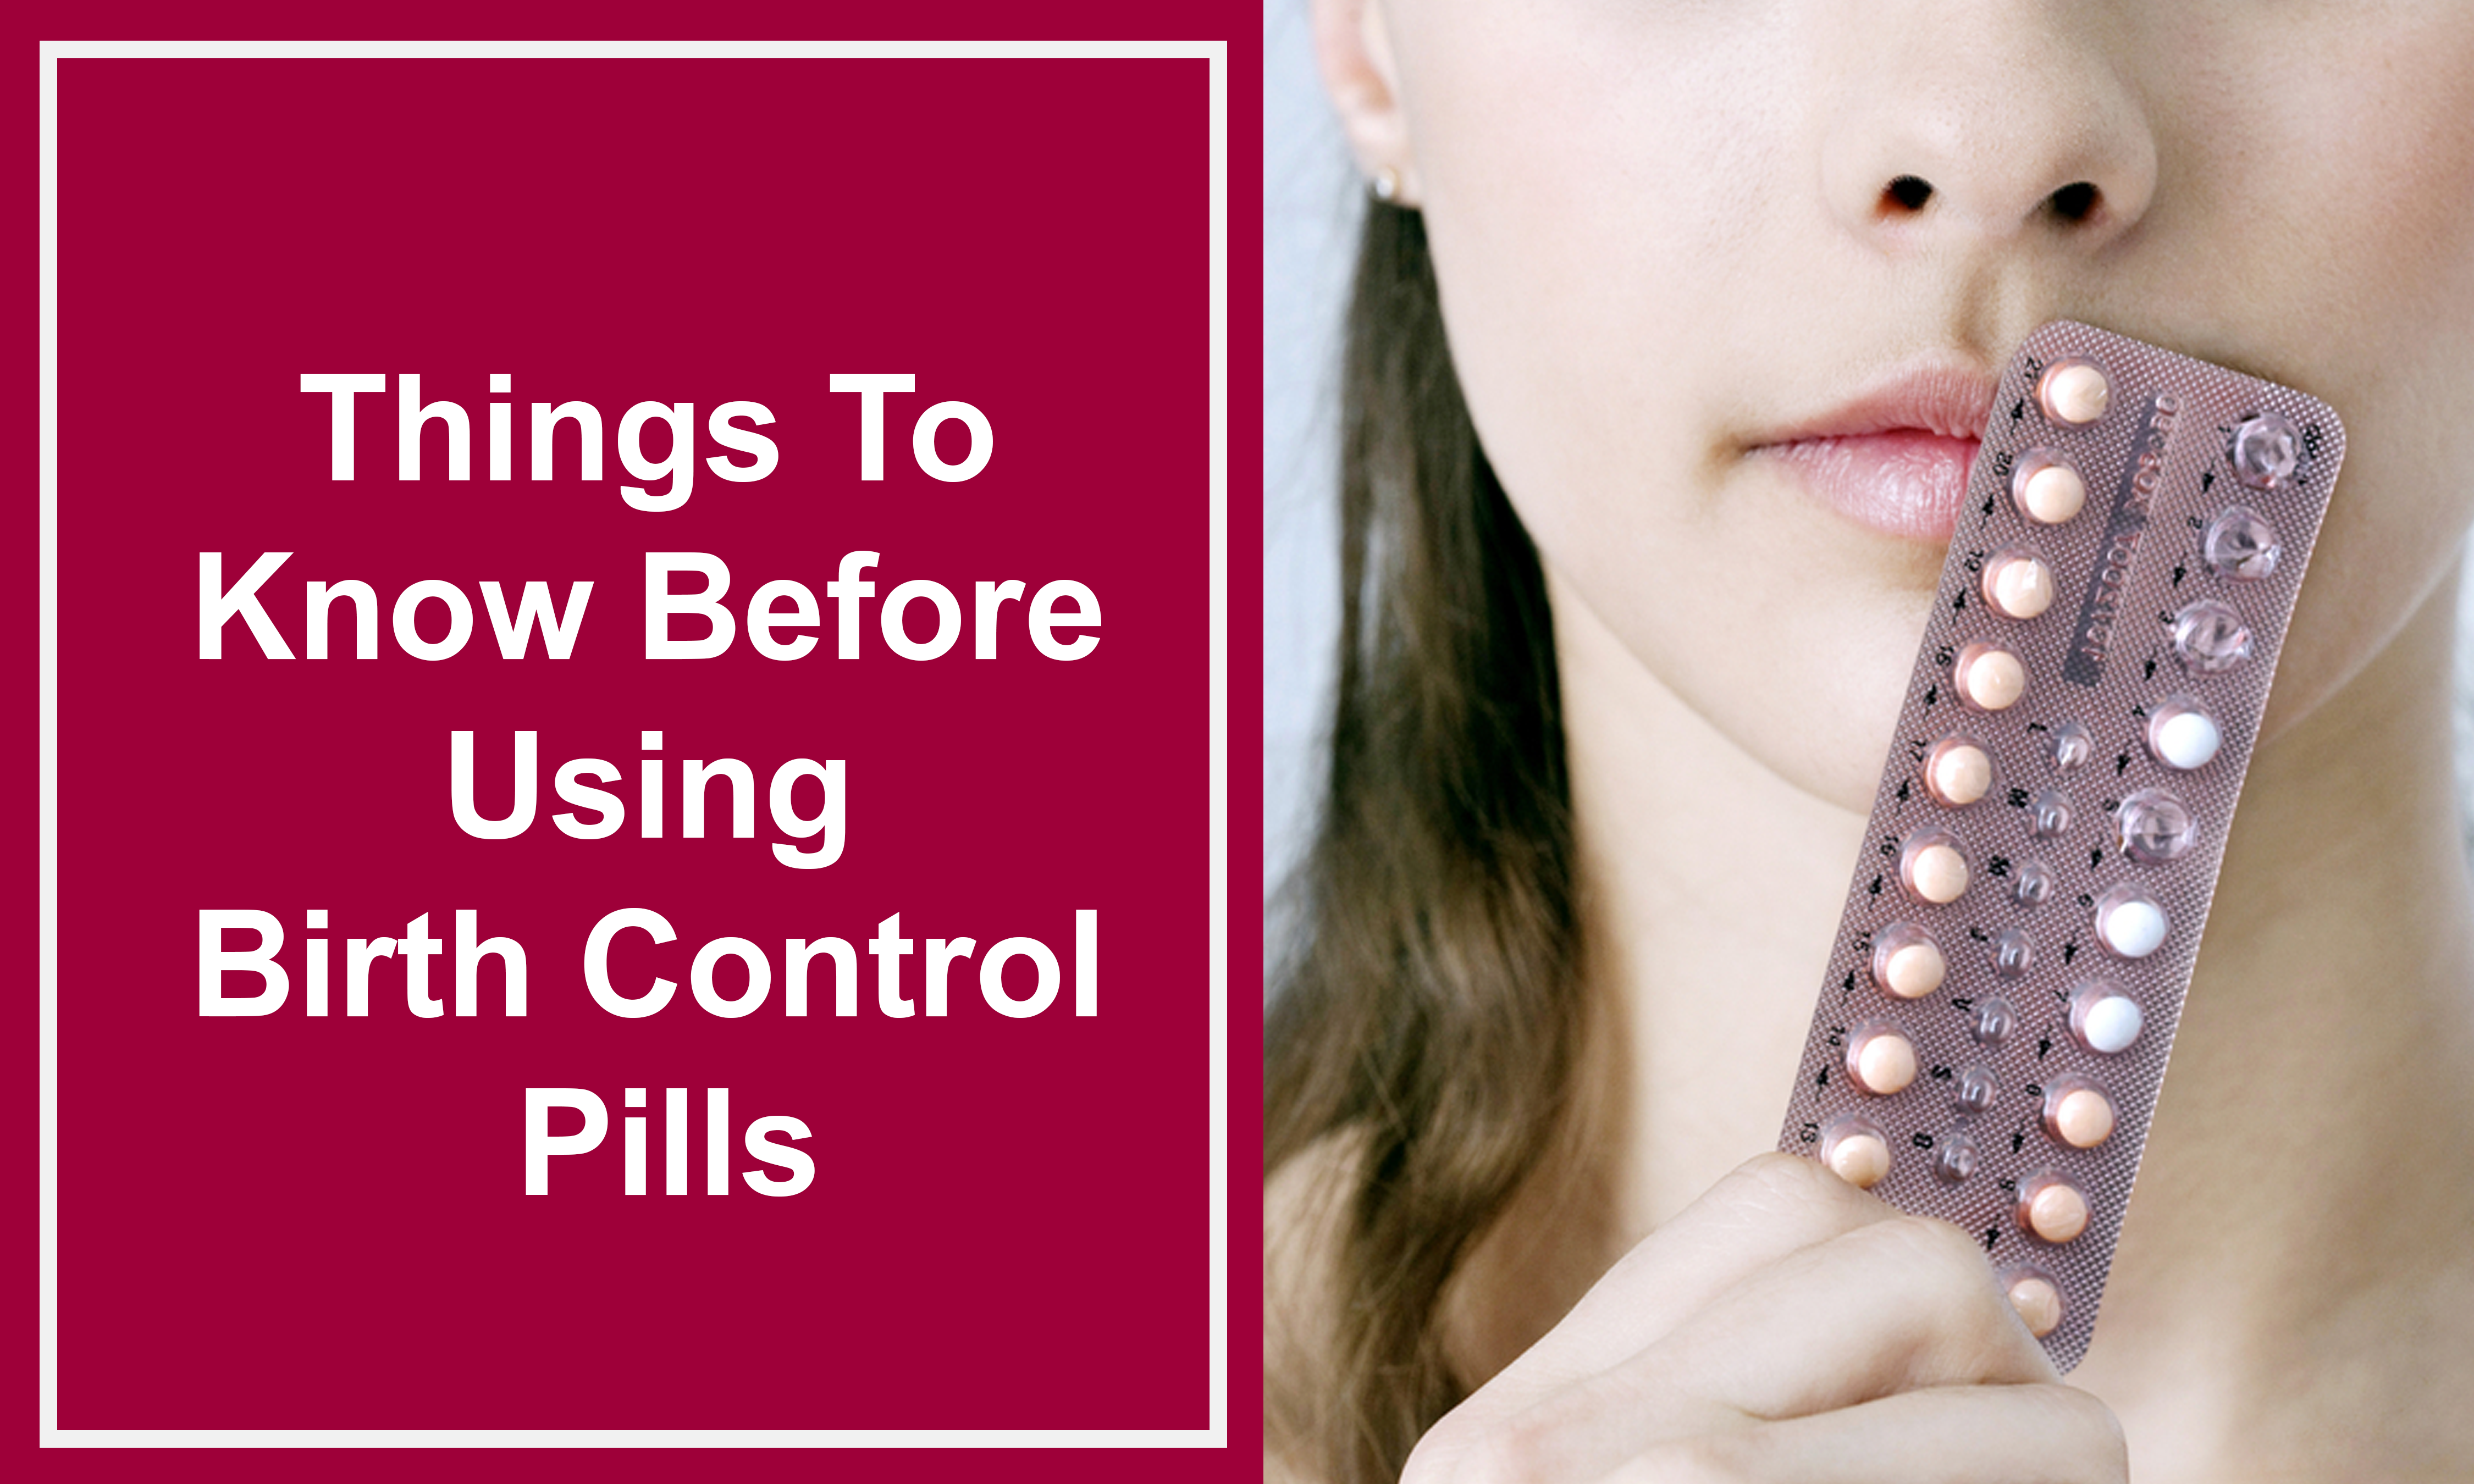 Things To Know Before Using Birth Control Pills